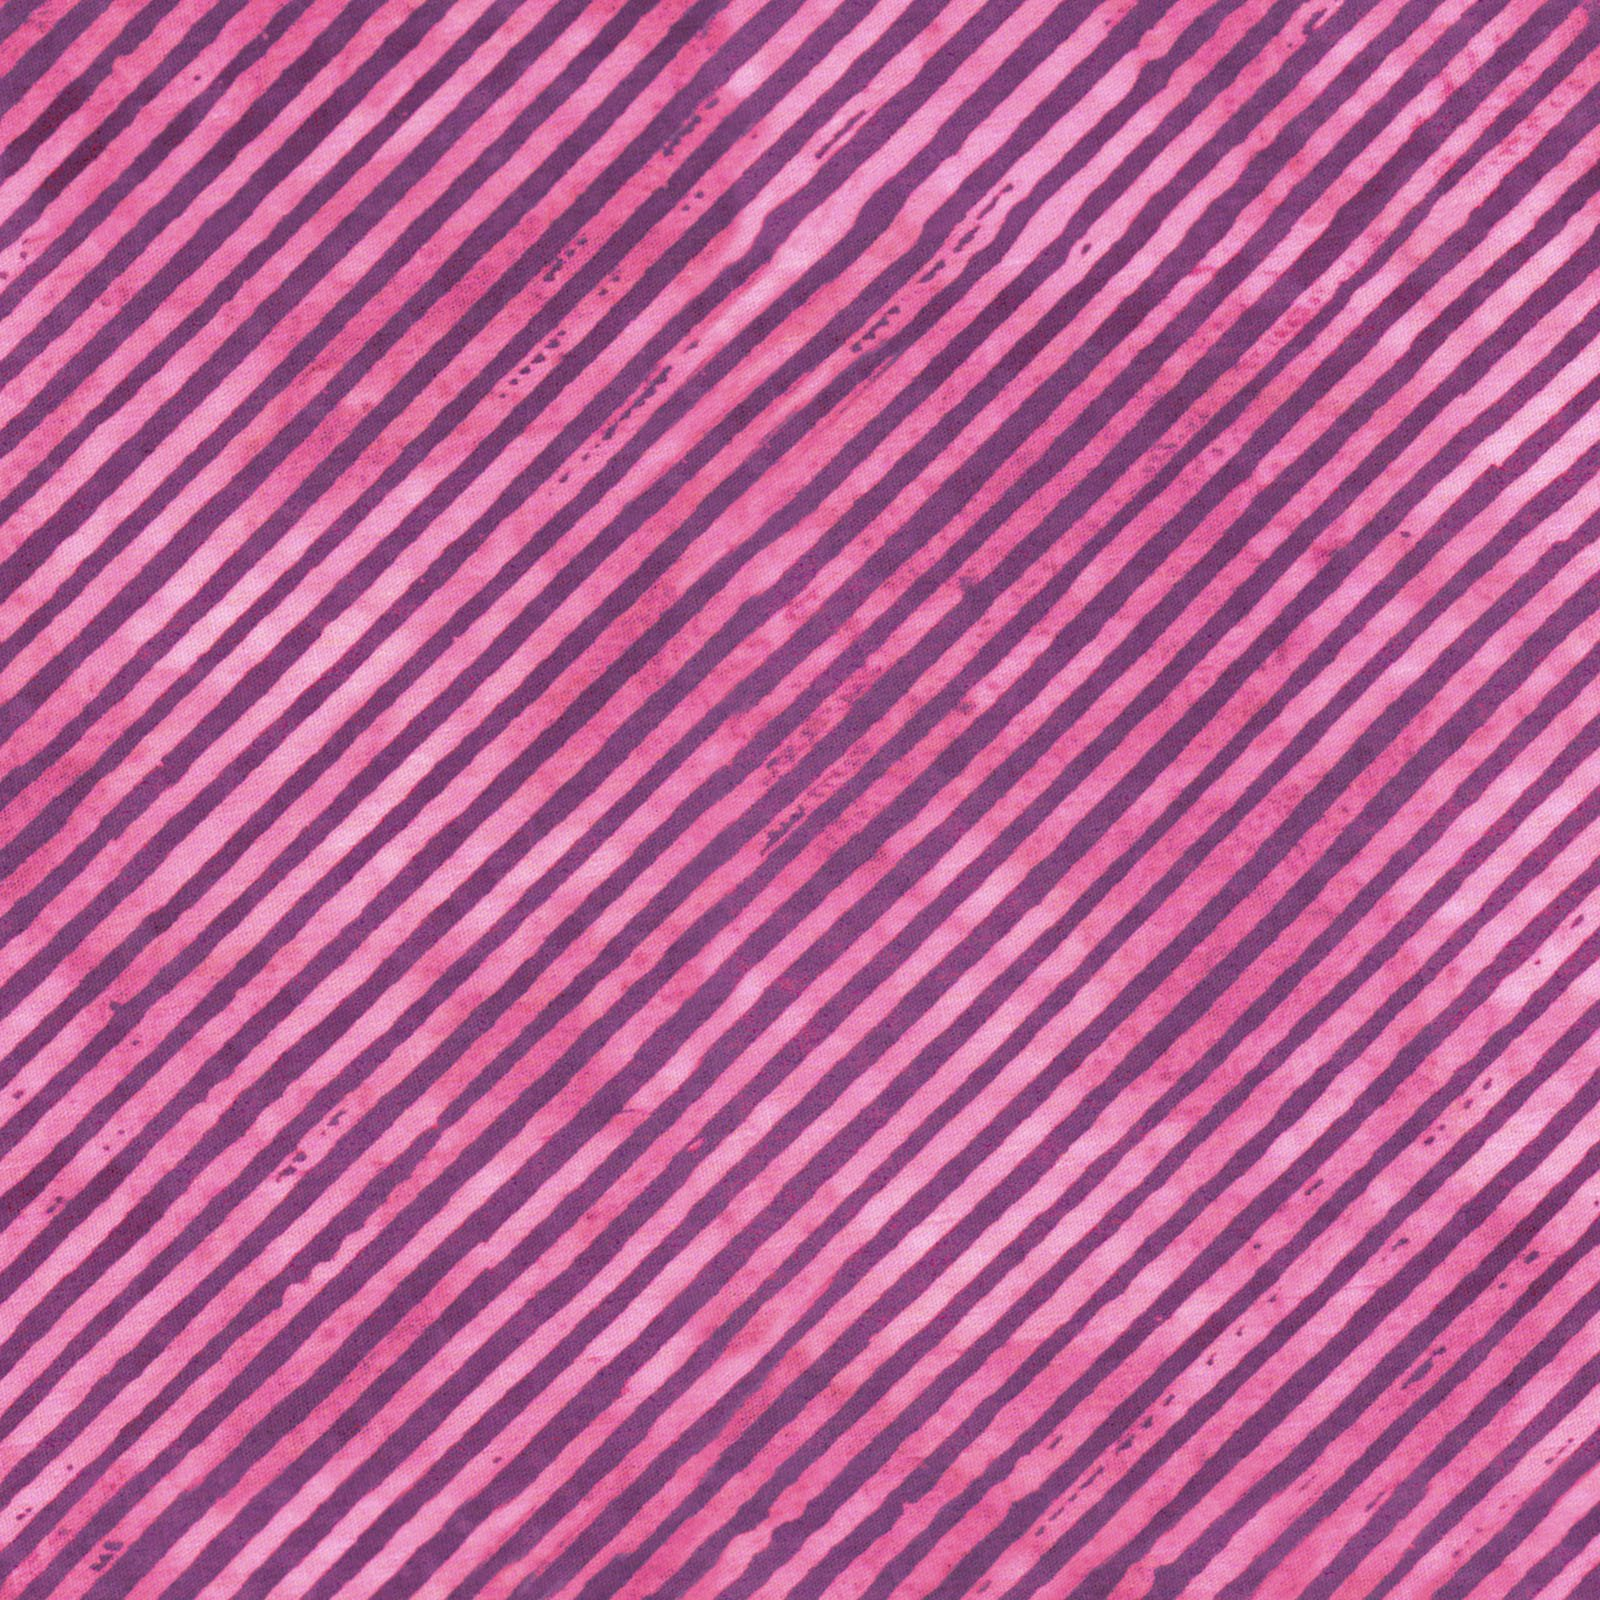 EESC-B50 VP - COLOR THERAPY BATIKS BY MAYWOOD STUDIO BIAS STRIPE PURPLE/PINK - ARRIVING DECEMBER 2020